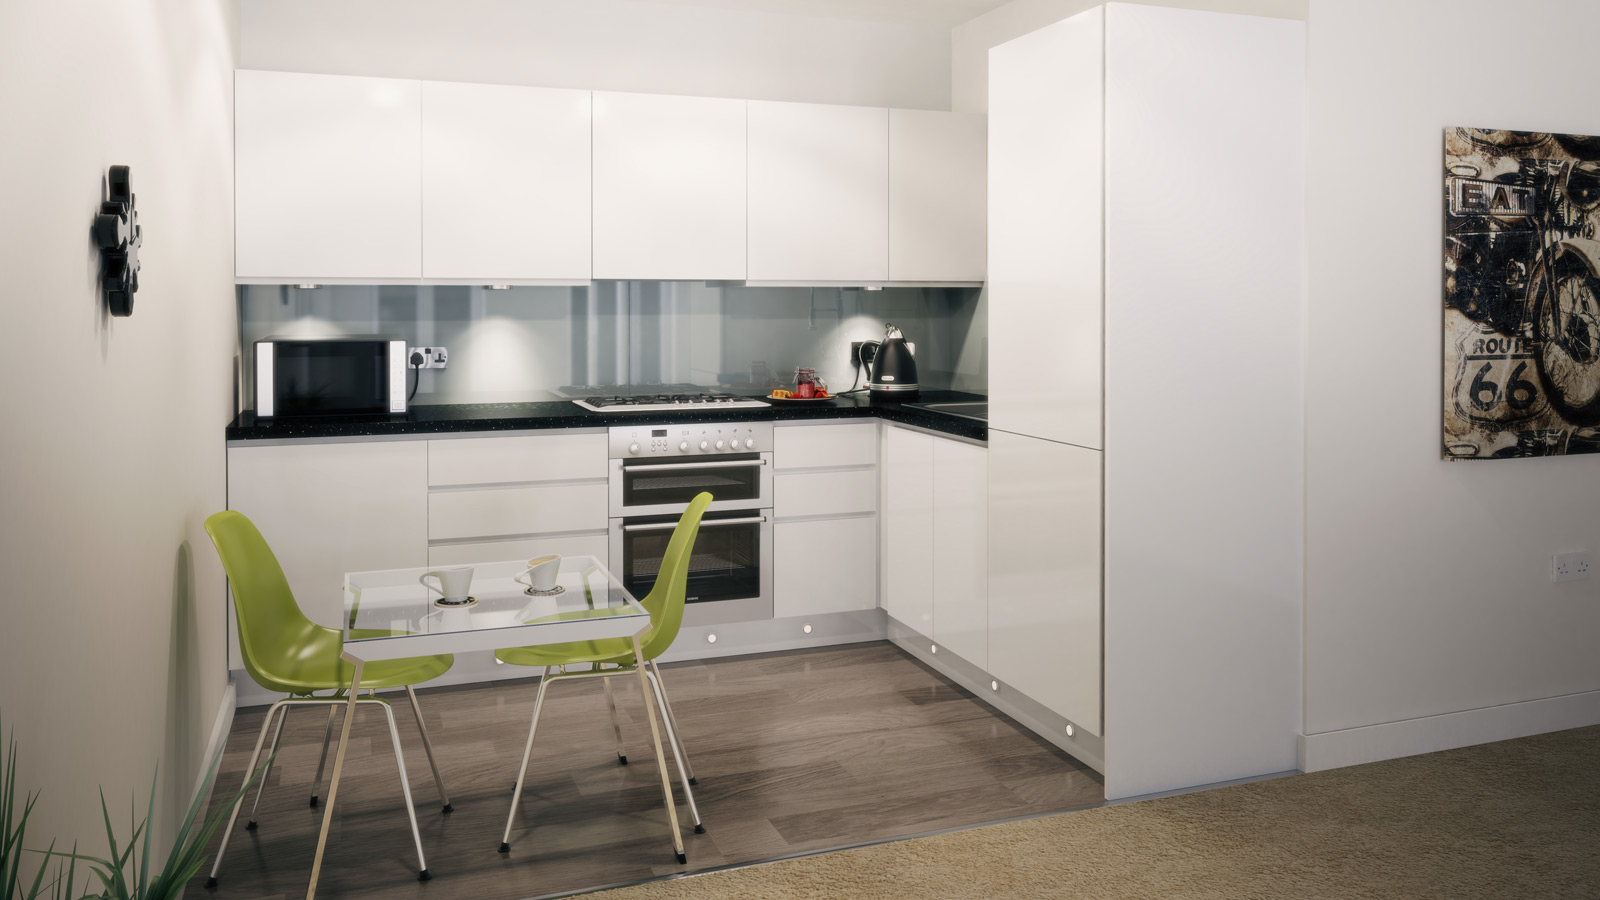 1-bed-kitchen-1-final.jpg